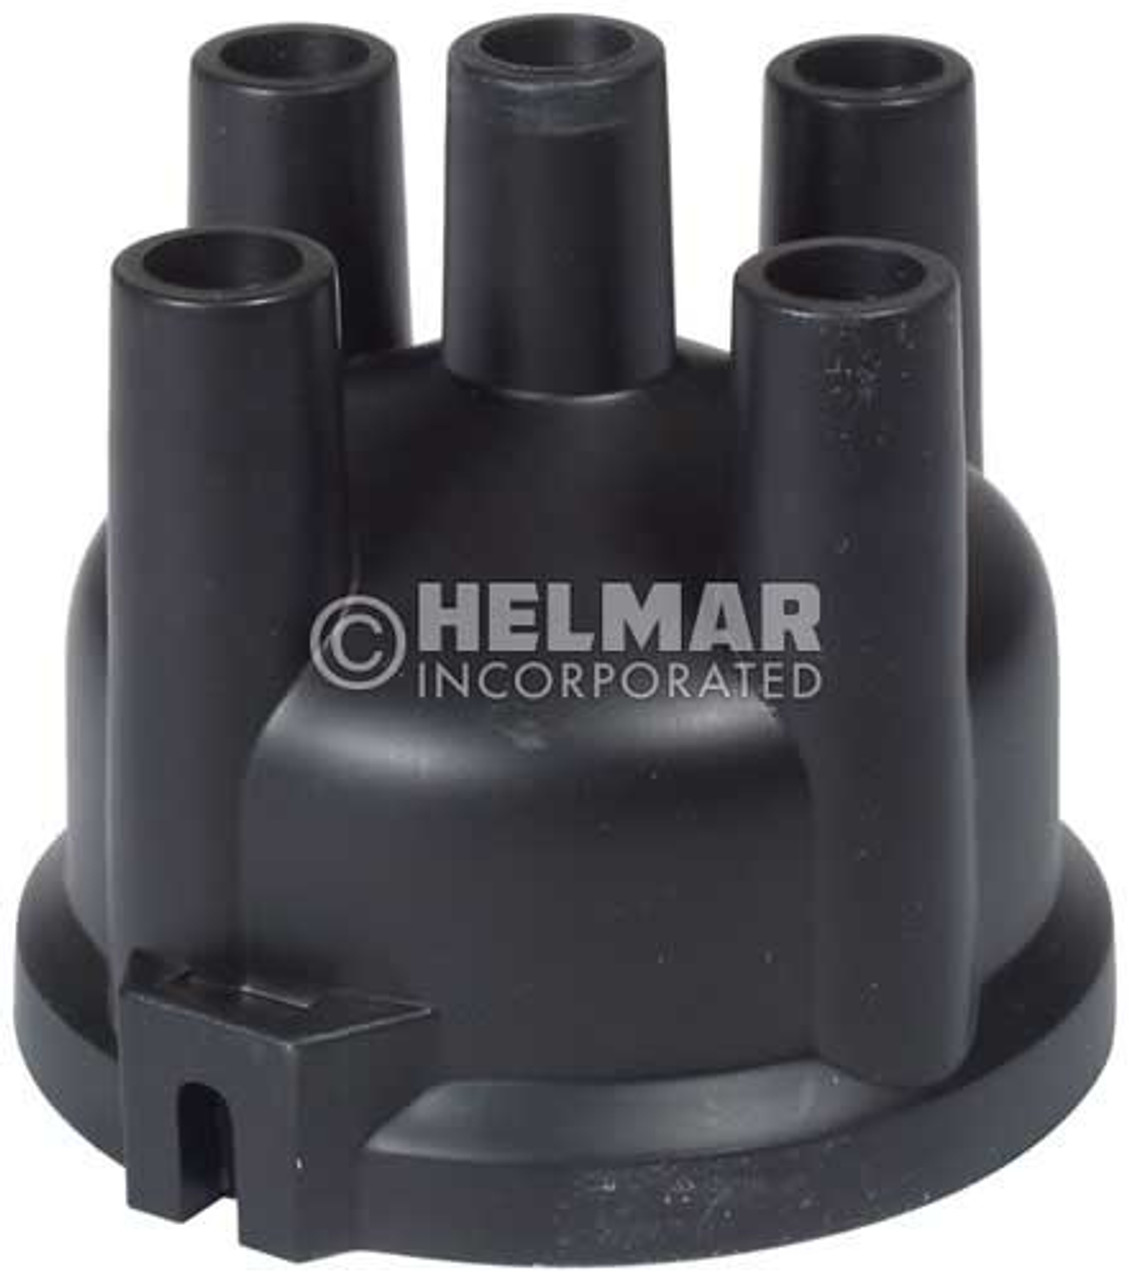 MD602949 Mitsubishi/Caterpillar Distributor Cap for 4G52 and 4G54 Engines, Type DC-15